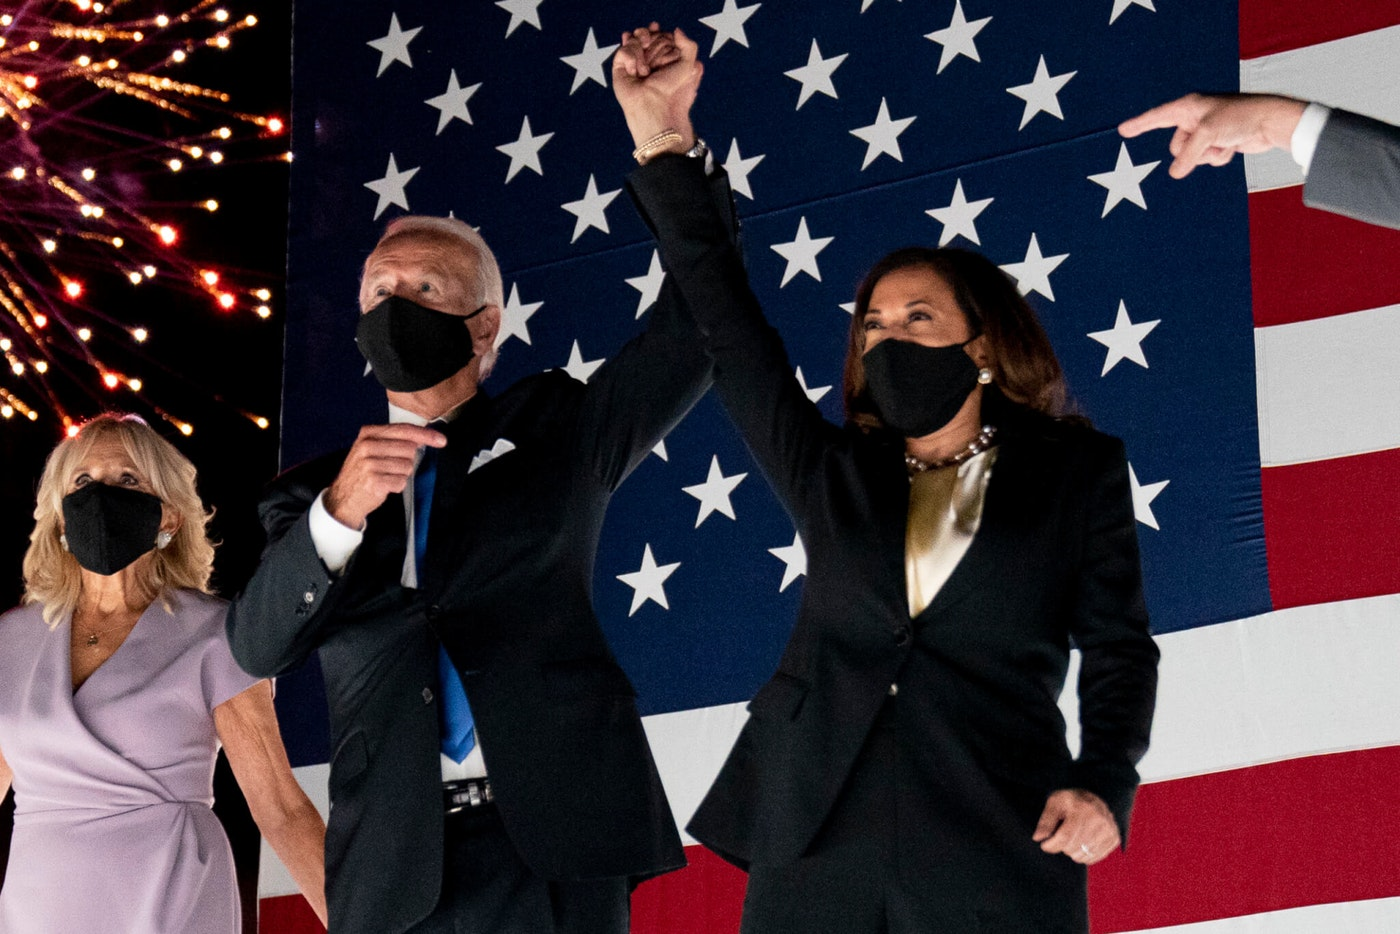 Democratic presidential candidate former Vice President Joe Biden and his running mate Sen. Kamala Harris, D-Calif., watch fireworks during the fourth day of the Democratic National Convention, Thursday, Aug. 20, 2020, at the Chase Center in Wilmington, Del. (AP Photo/Andrew Harnik)